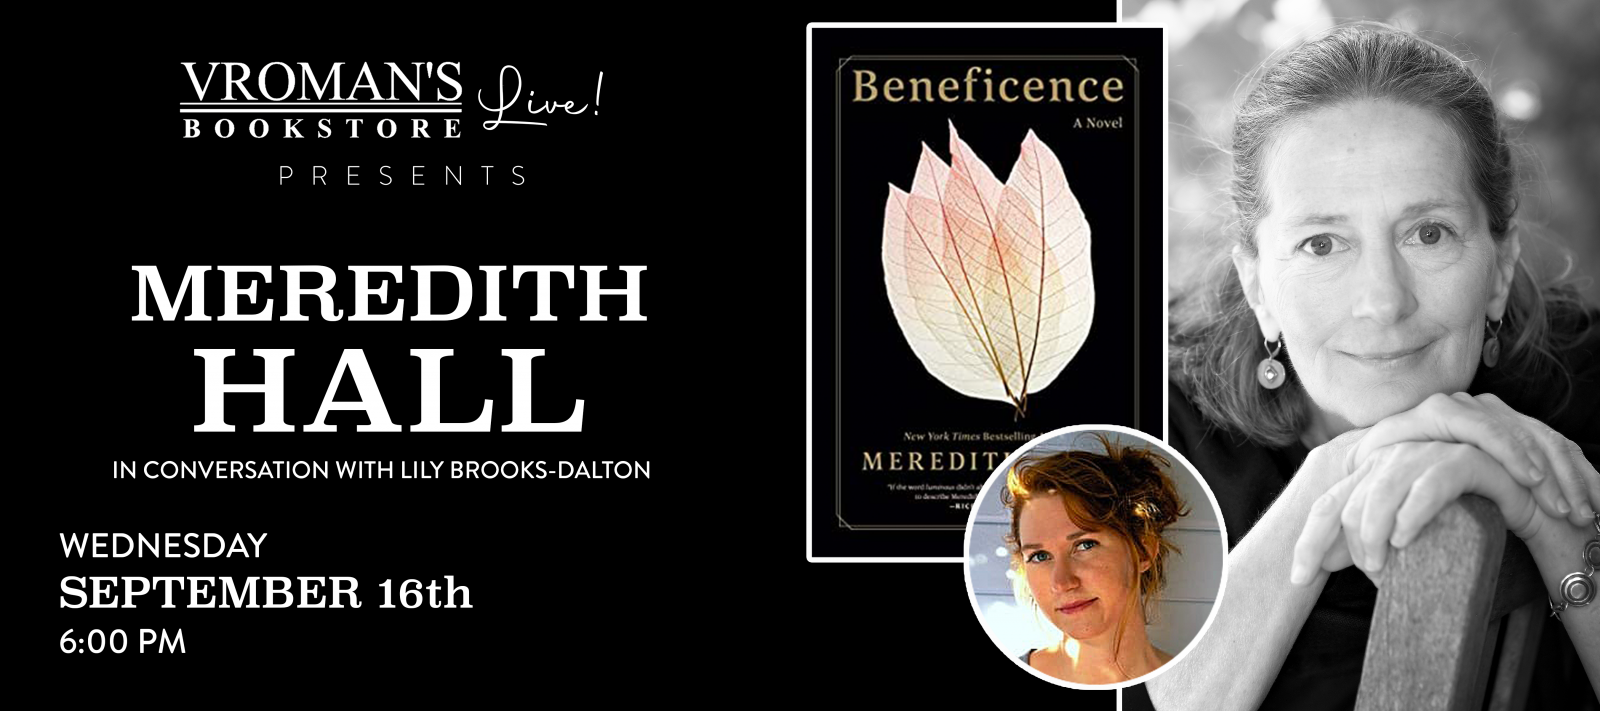 Vroman's Live presents Meredith Hall in conversation with Lily Brooks-Dalton on Wednesday September 16 at 6pm